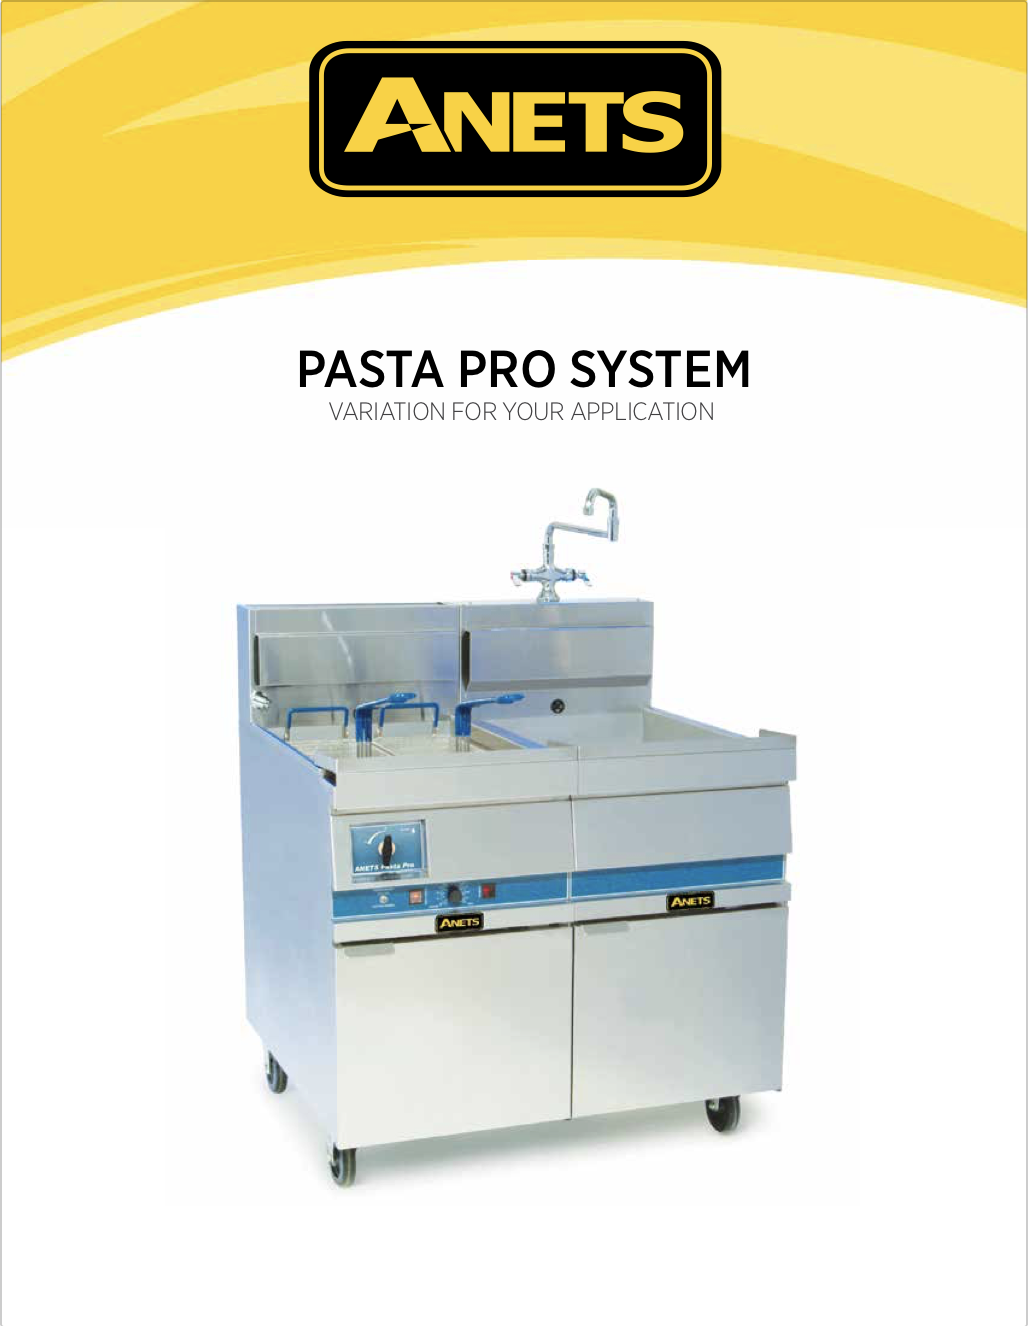 Anets Pasta Pro System